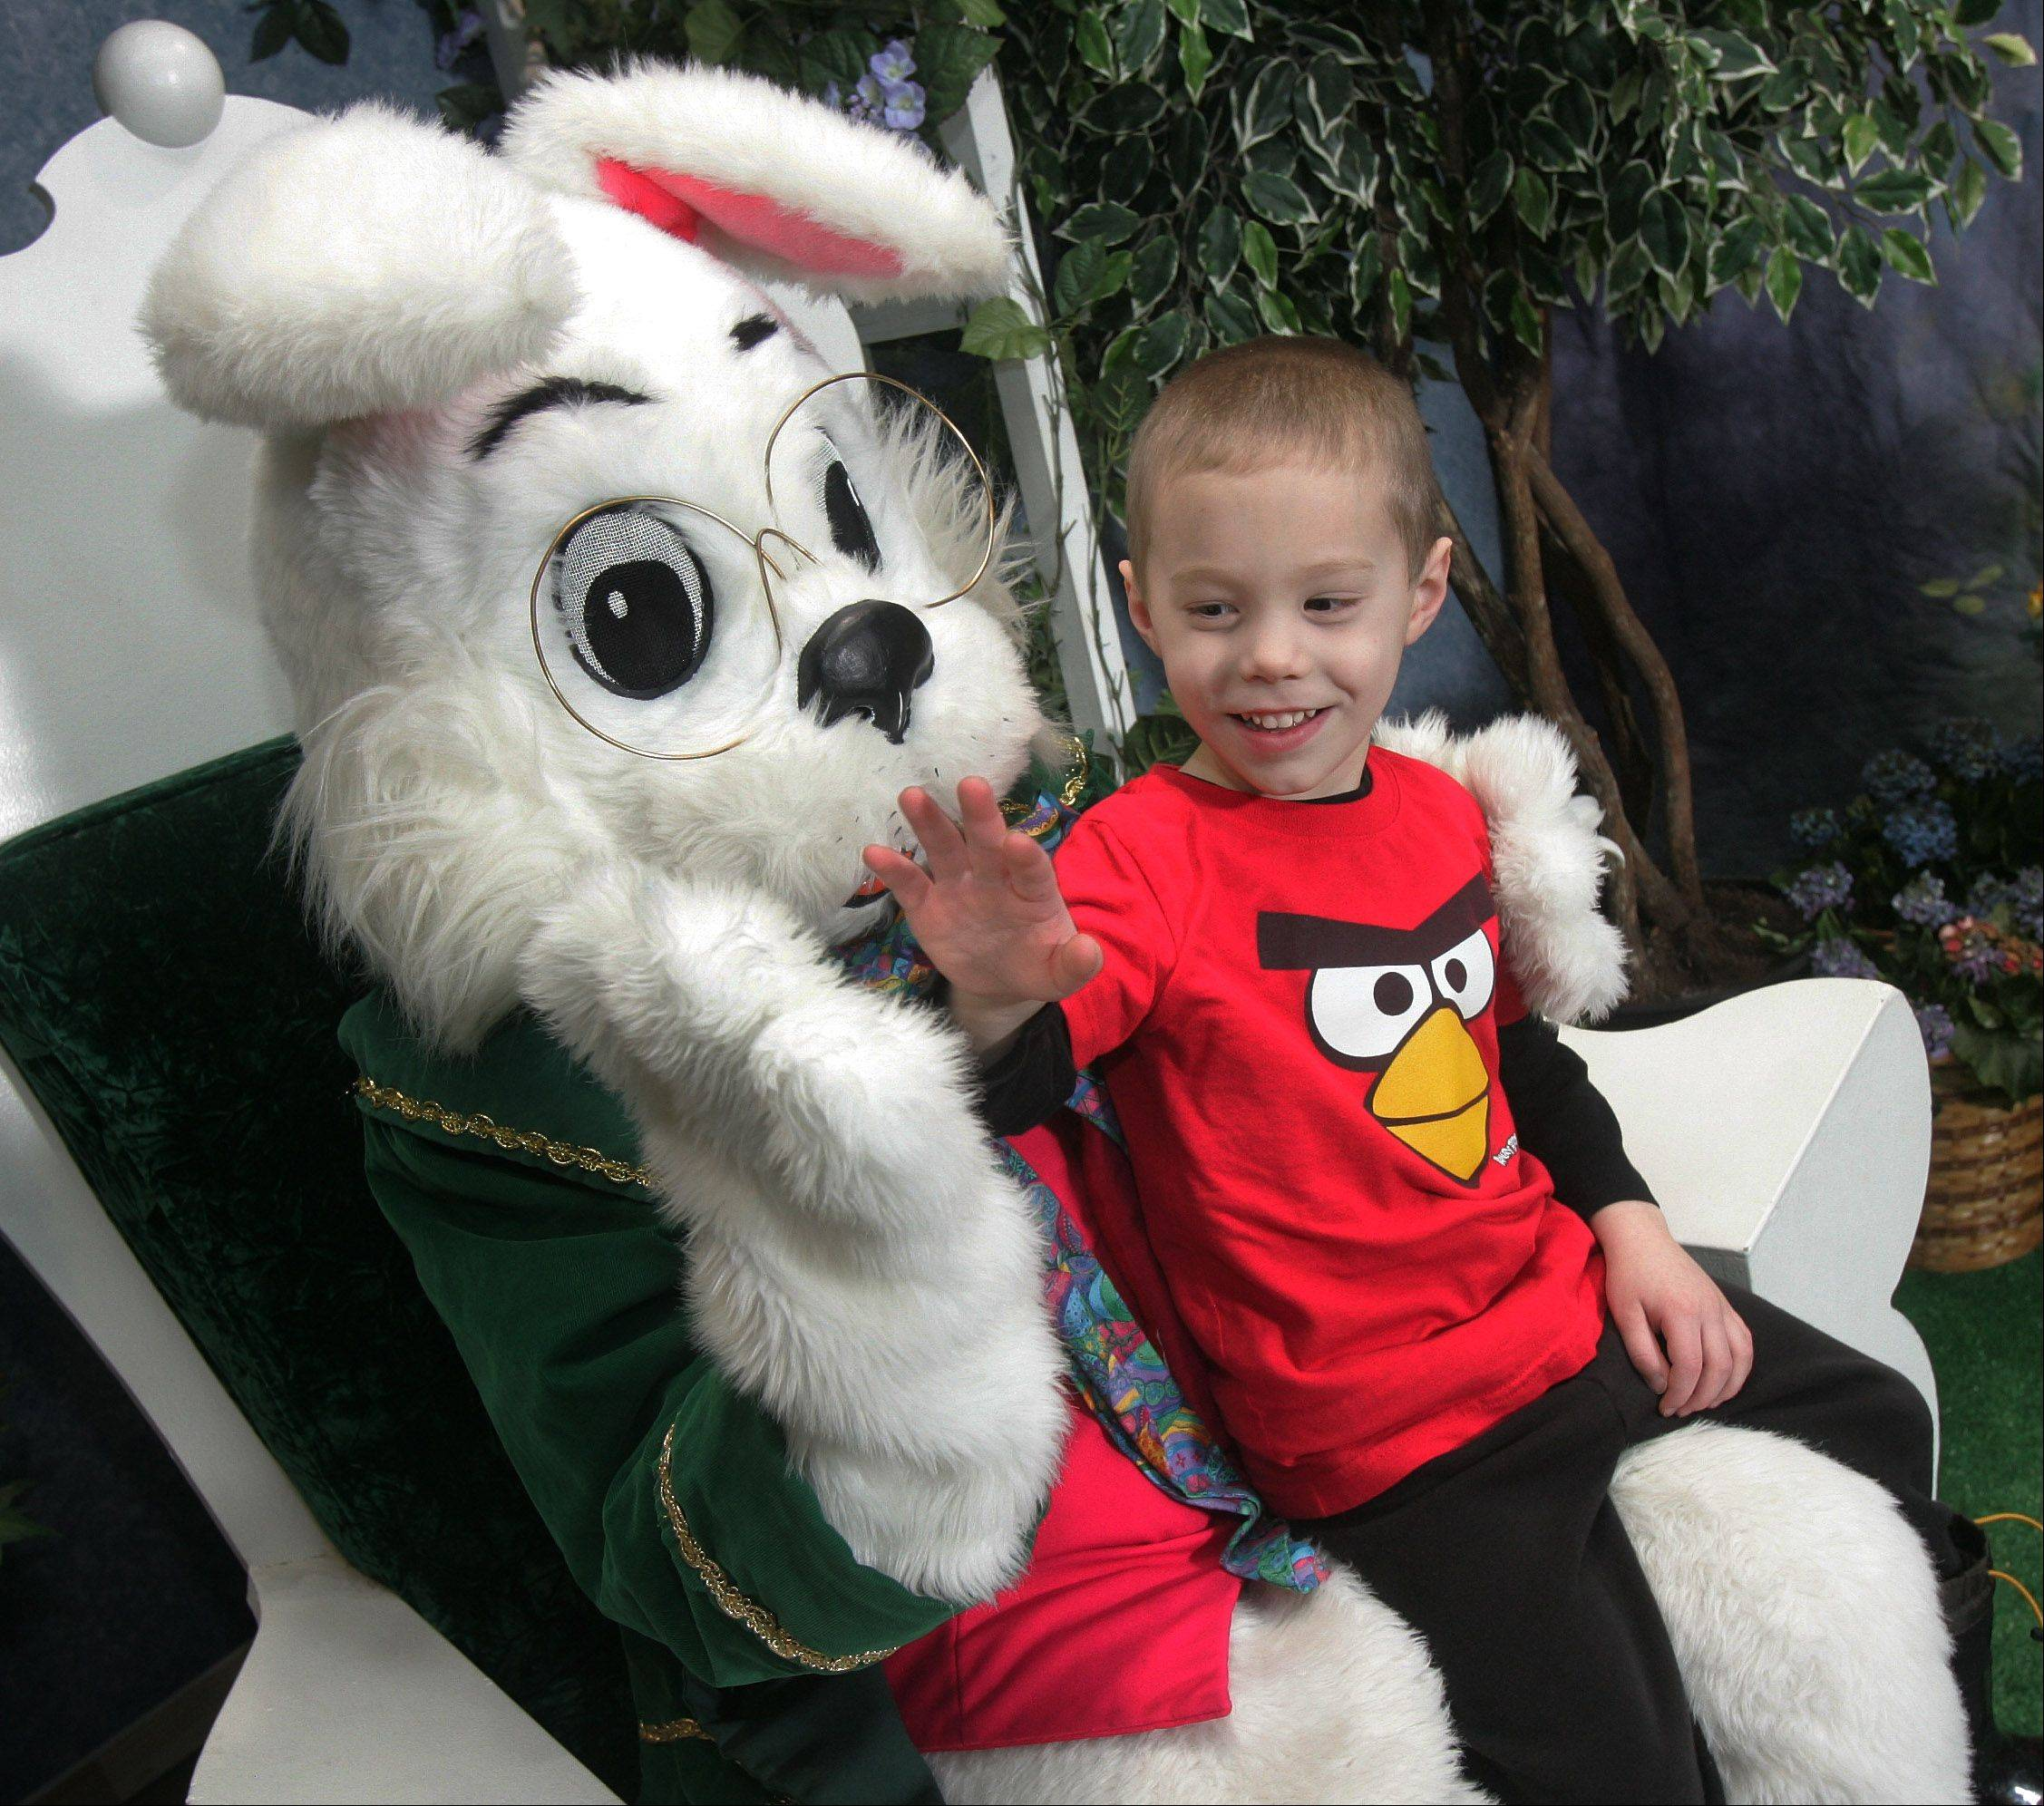 A.J. Garrity, 4, of Antioch, gives a high five to the Easter Bunny Monday in Grange Hall at Gurnee Mills. The Easter Bunny will be at he mall till March 30, Monday-Saturday from 11am-8pm and Sunday from 11am-6pm.